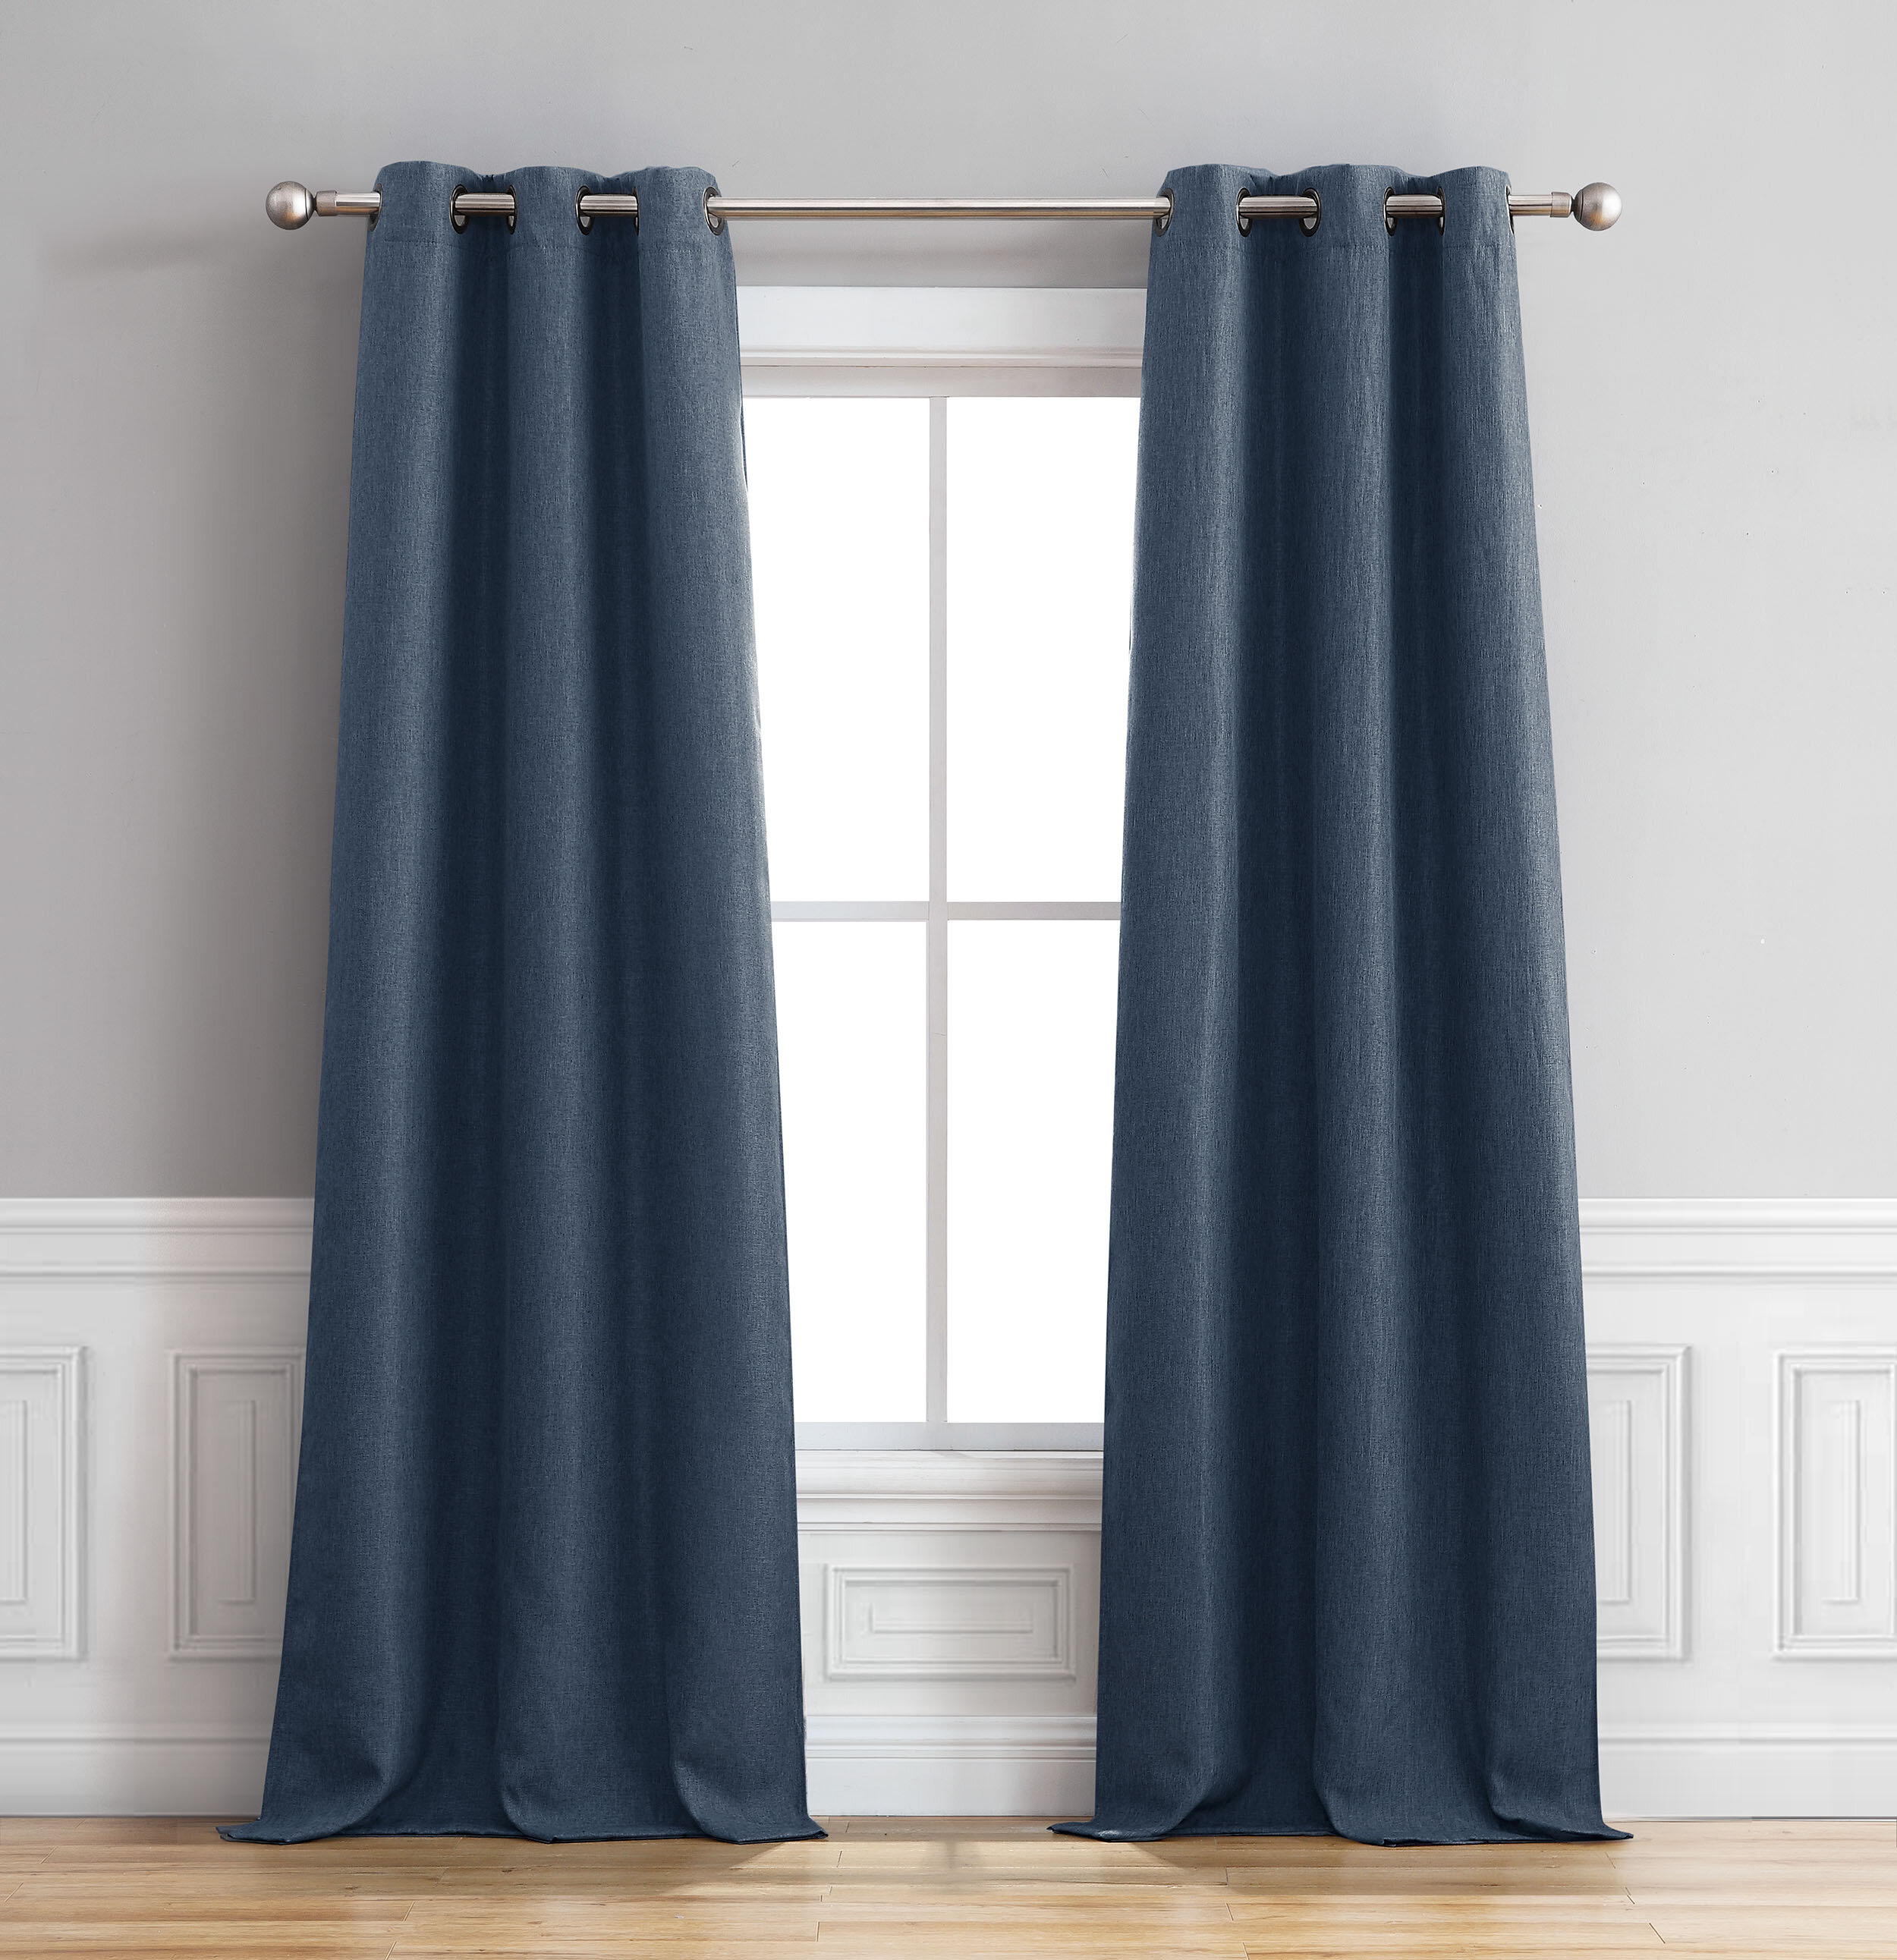 Sokol Faux Linen Room Darkening Thermal Grommet Curtain Panels For Thermal Insulated Blackout Grommet Top Curtain Panel Pairs (View 22 of 30)